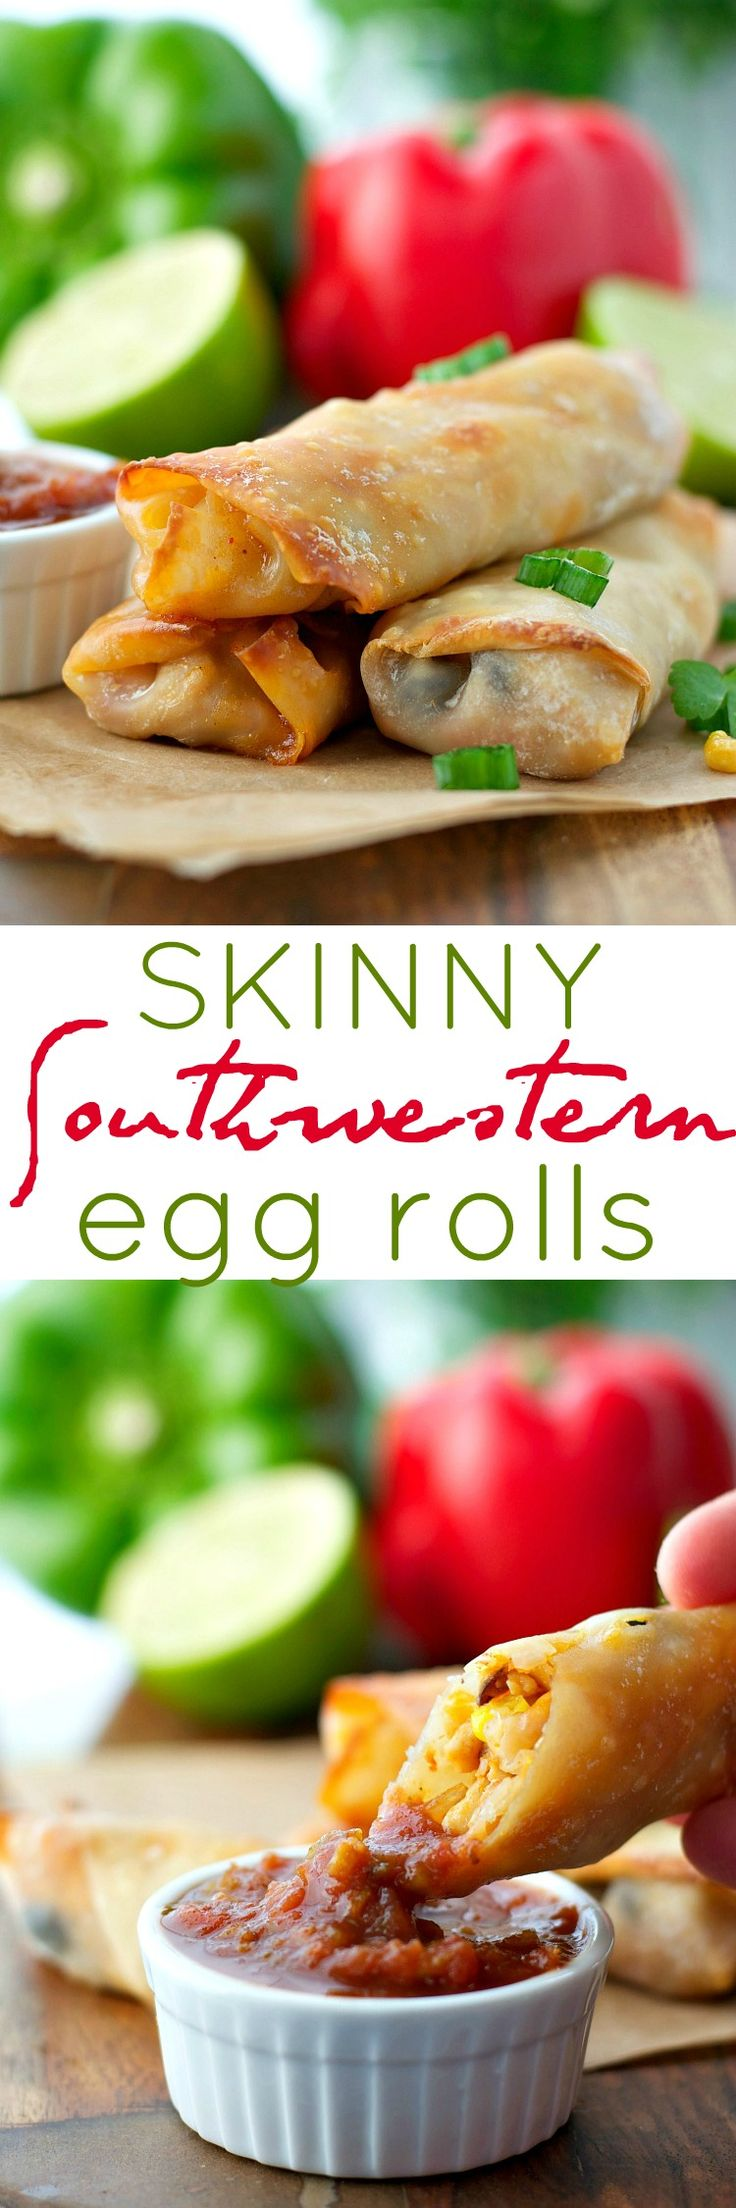 A quick and healthy dinner or a fun party appetizer, these Skinny Southwestern Egg Rolls are crispy on the outside, stuffed with a cheesy chicken filling, and perfect for dipping! Only 125 calories per roll!